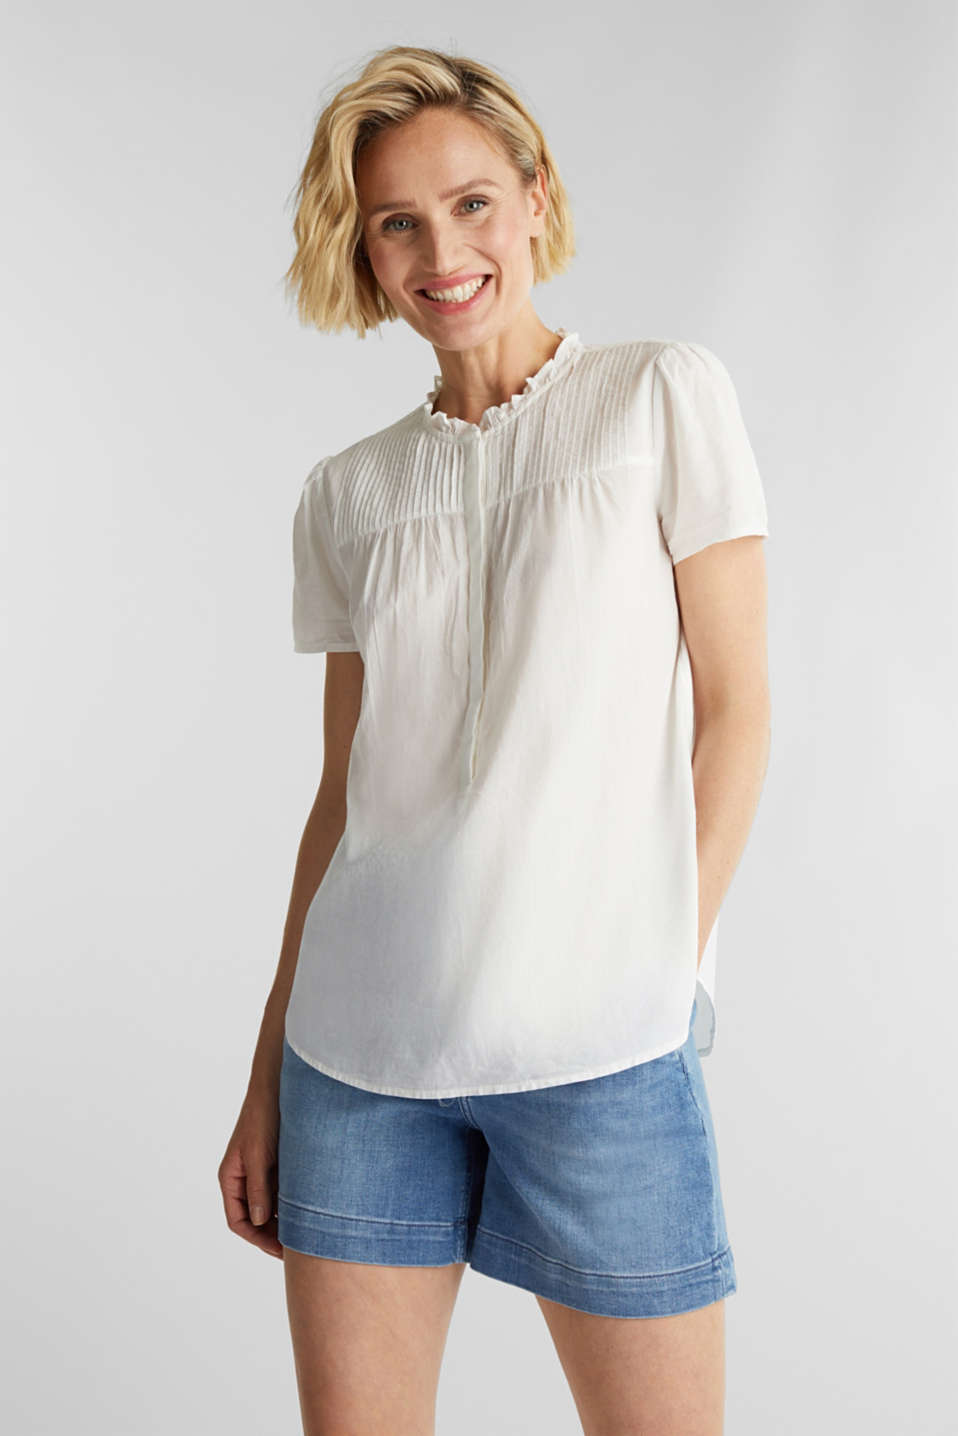 Esprit - Blouse with pintucks, 100% cotton